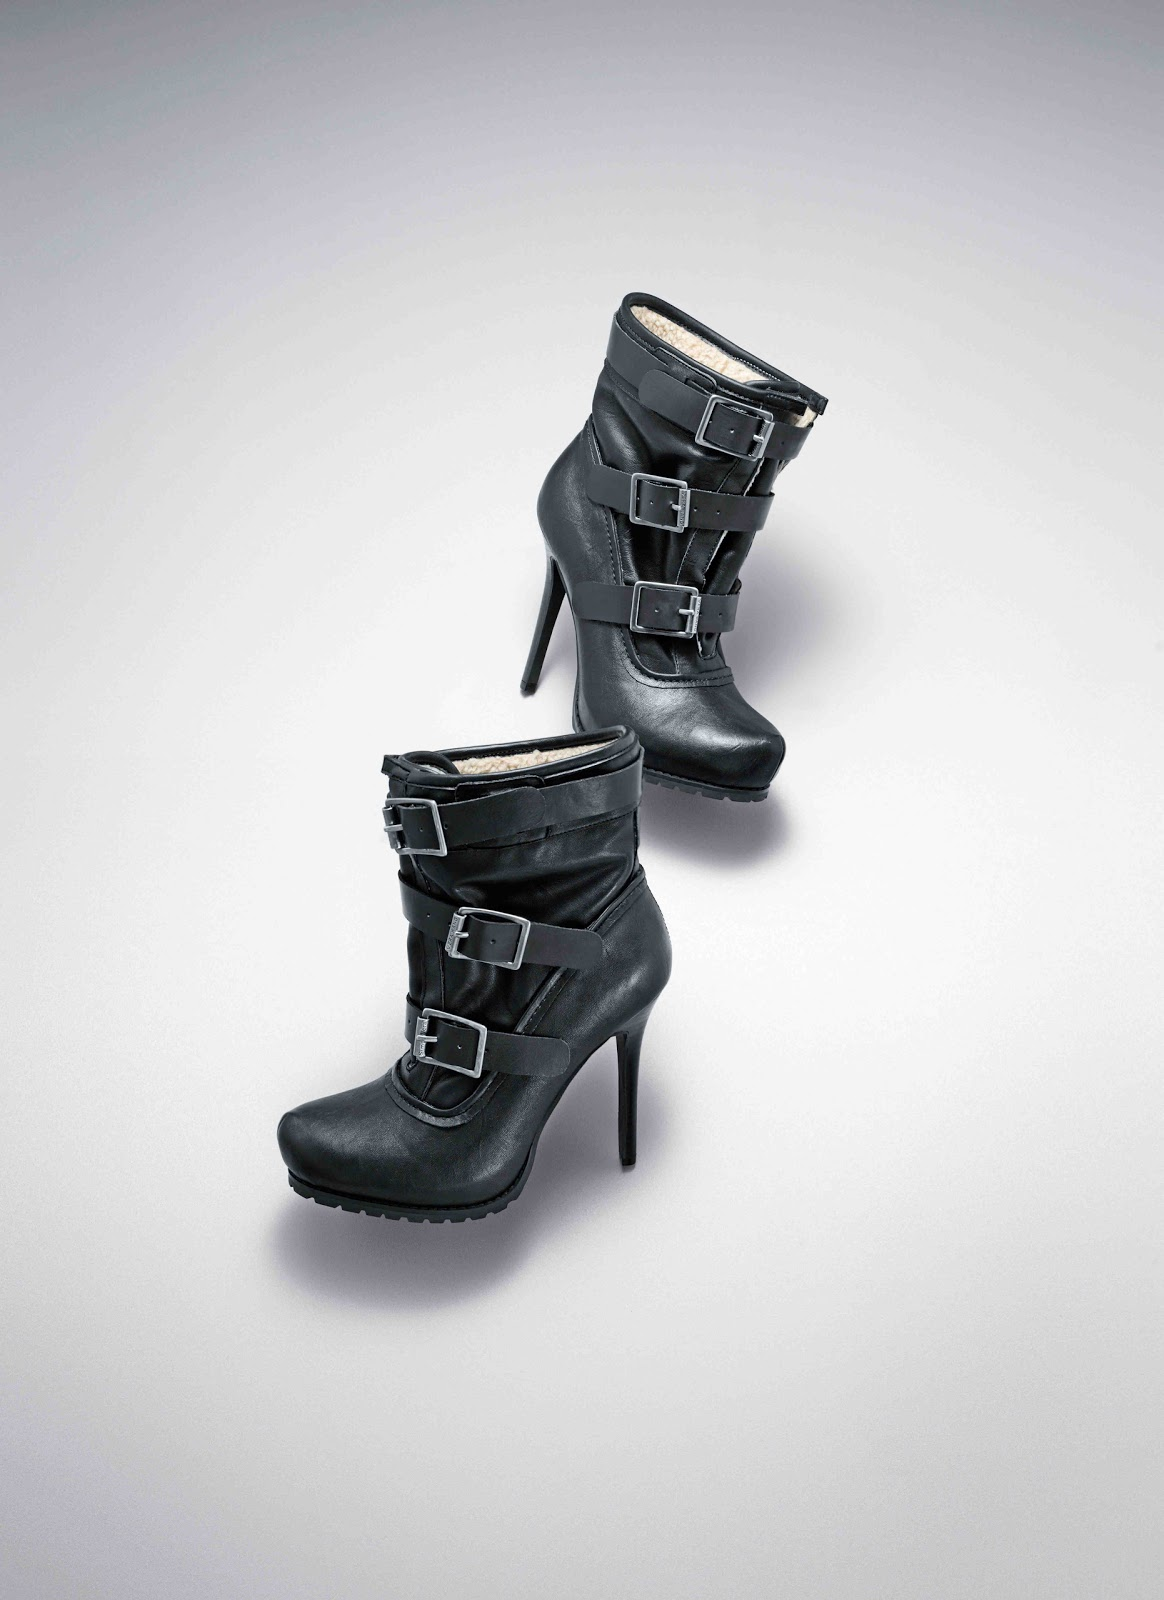 These gorgeous Simply Vera Vera Wang Flamingo ankle boots are a stunning way to elevate your shoe nmuiakbosczpl.ga the product video nmuiakbosczpl.ga Features Sleek silhouette B $ $ at Kohl's.